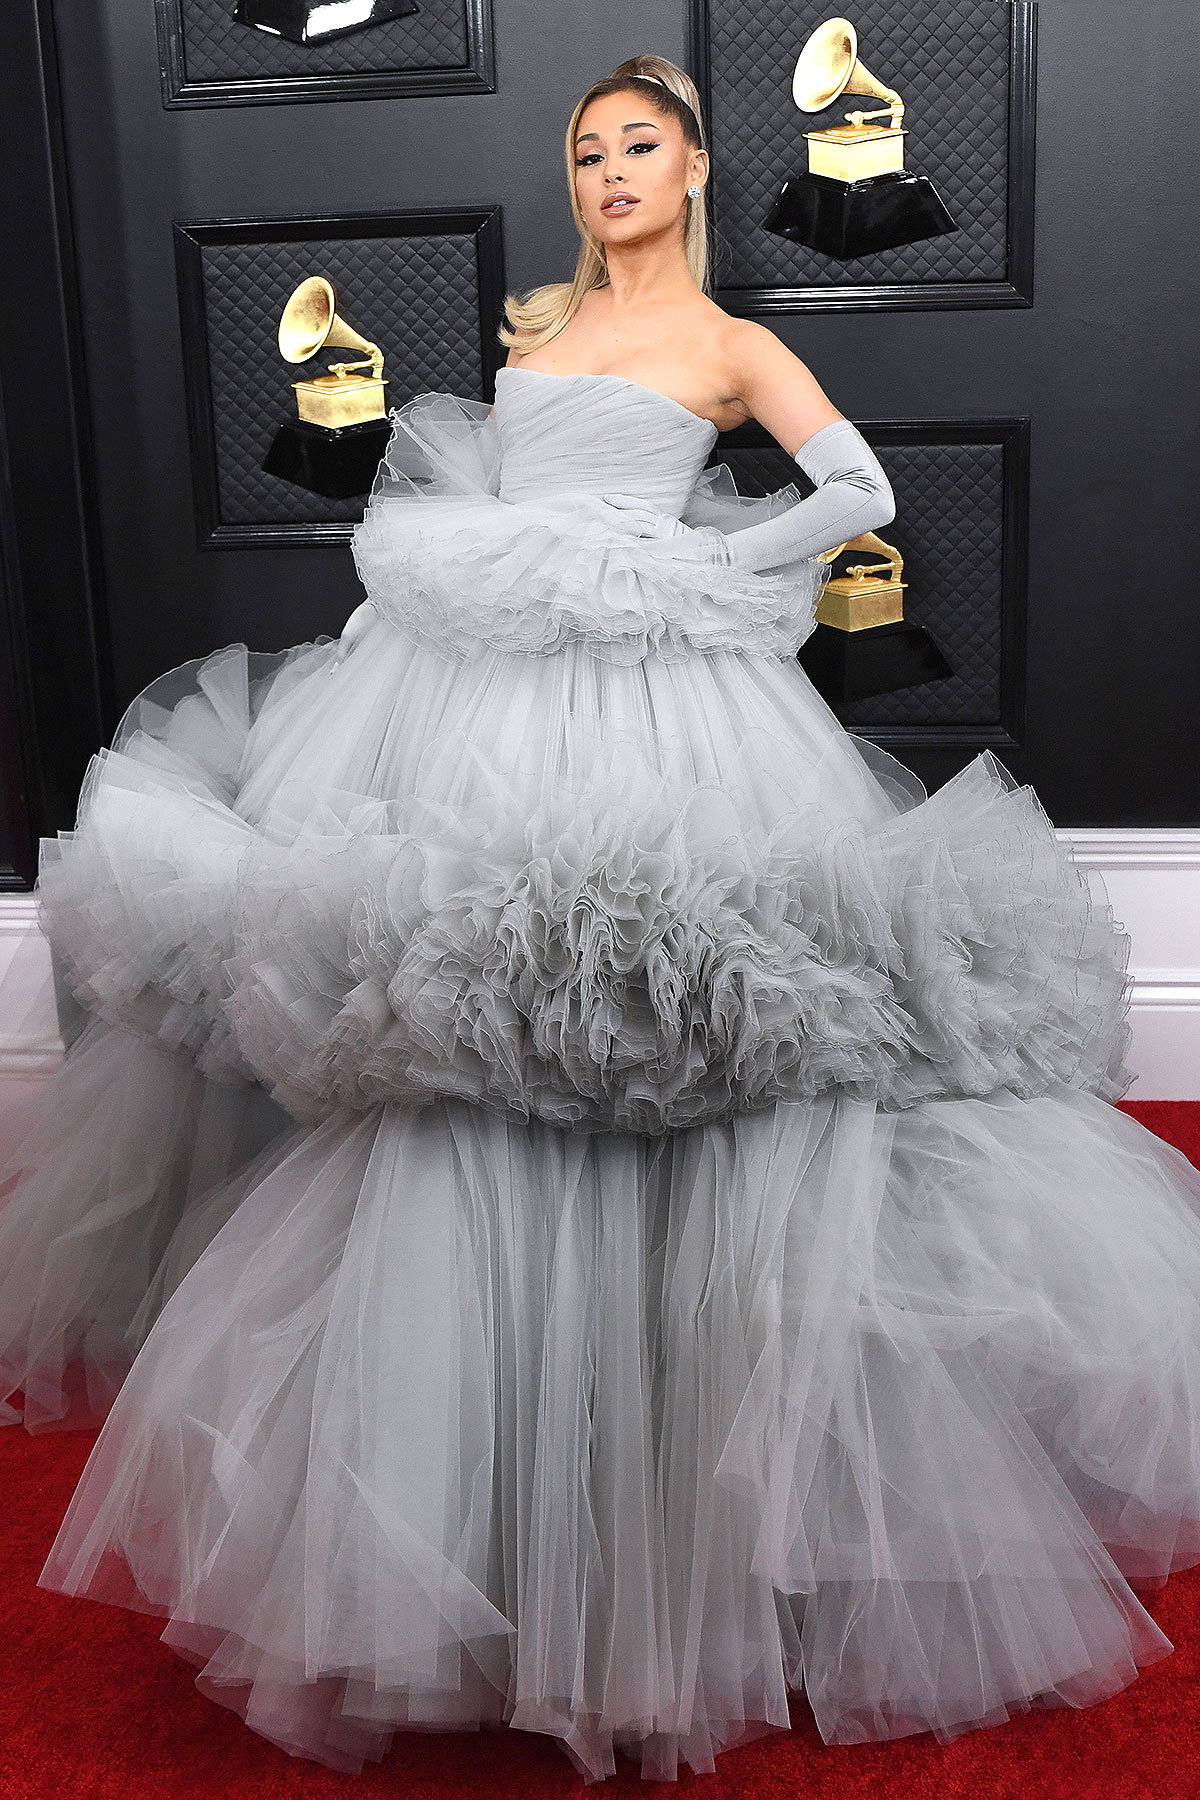 grammys 2020 ariana grande wears a dramatic tulle ballgown on red carpet people com https people com style grammys 2020 ariana grande ballgown parents red carpet